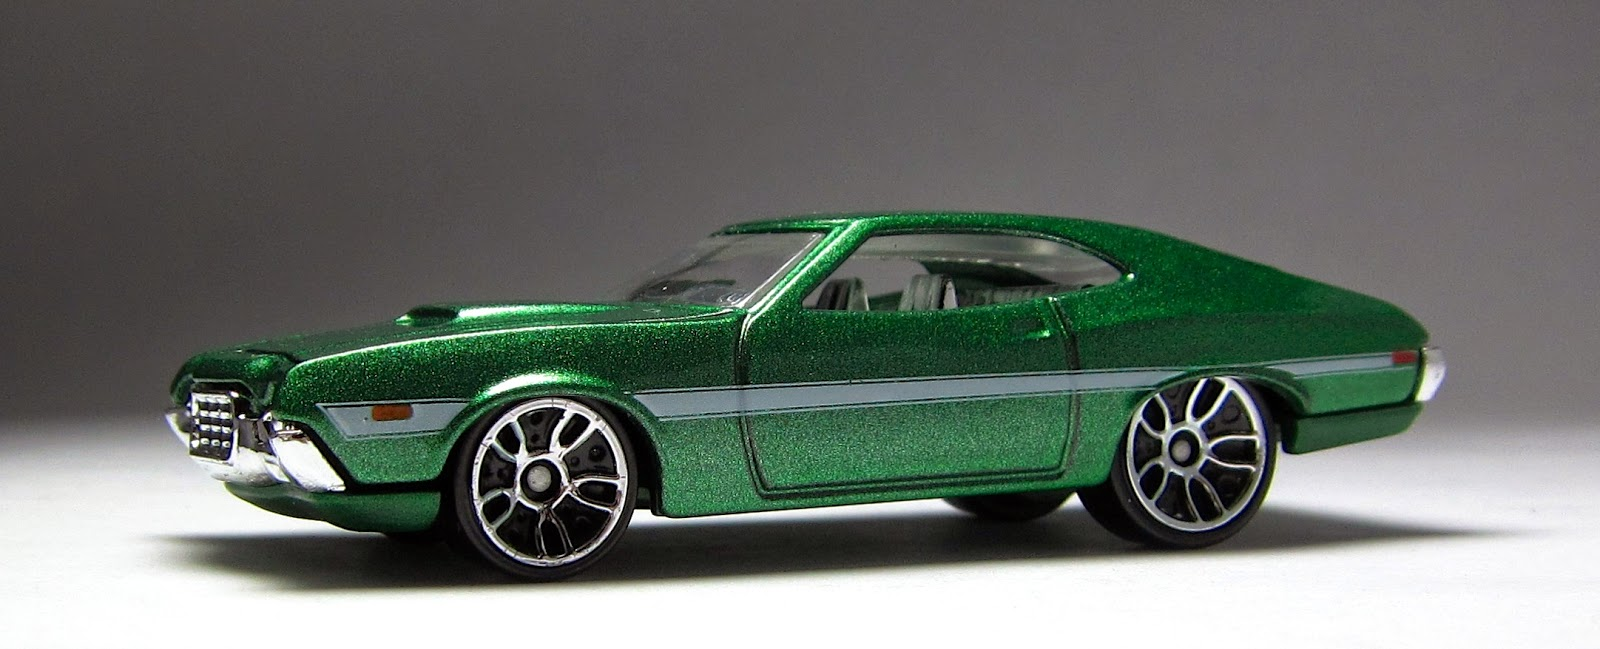 Best motorcycle 2014 1972 ford gran torino hot wheels 2014 fast furious